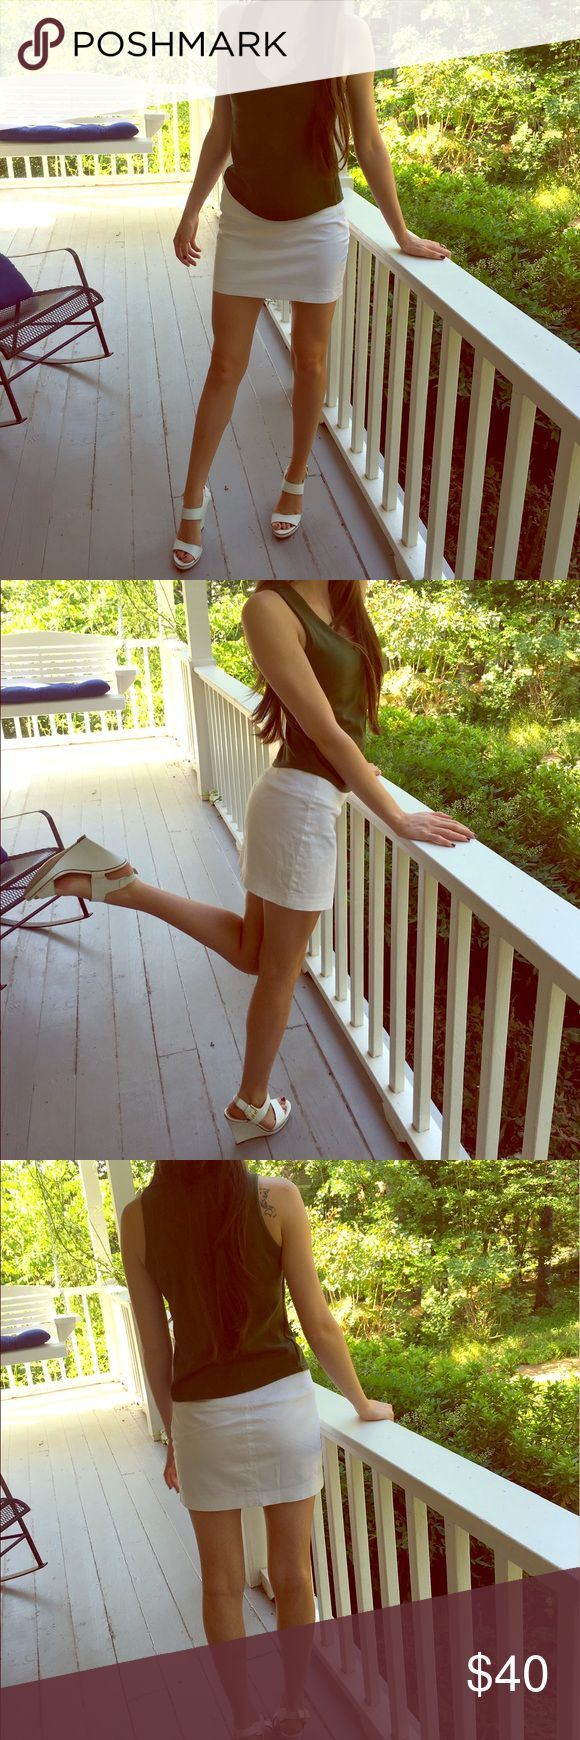 Express White Mini Skirt Work it in this white mini skirt from express! Makes your legs look long and thin! Looks brand new, perfect condition. Open to offers! Express Skirts Mini